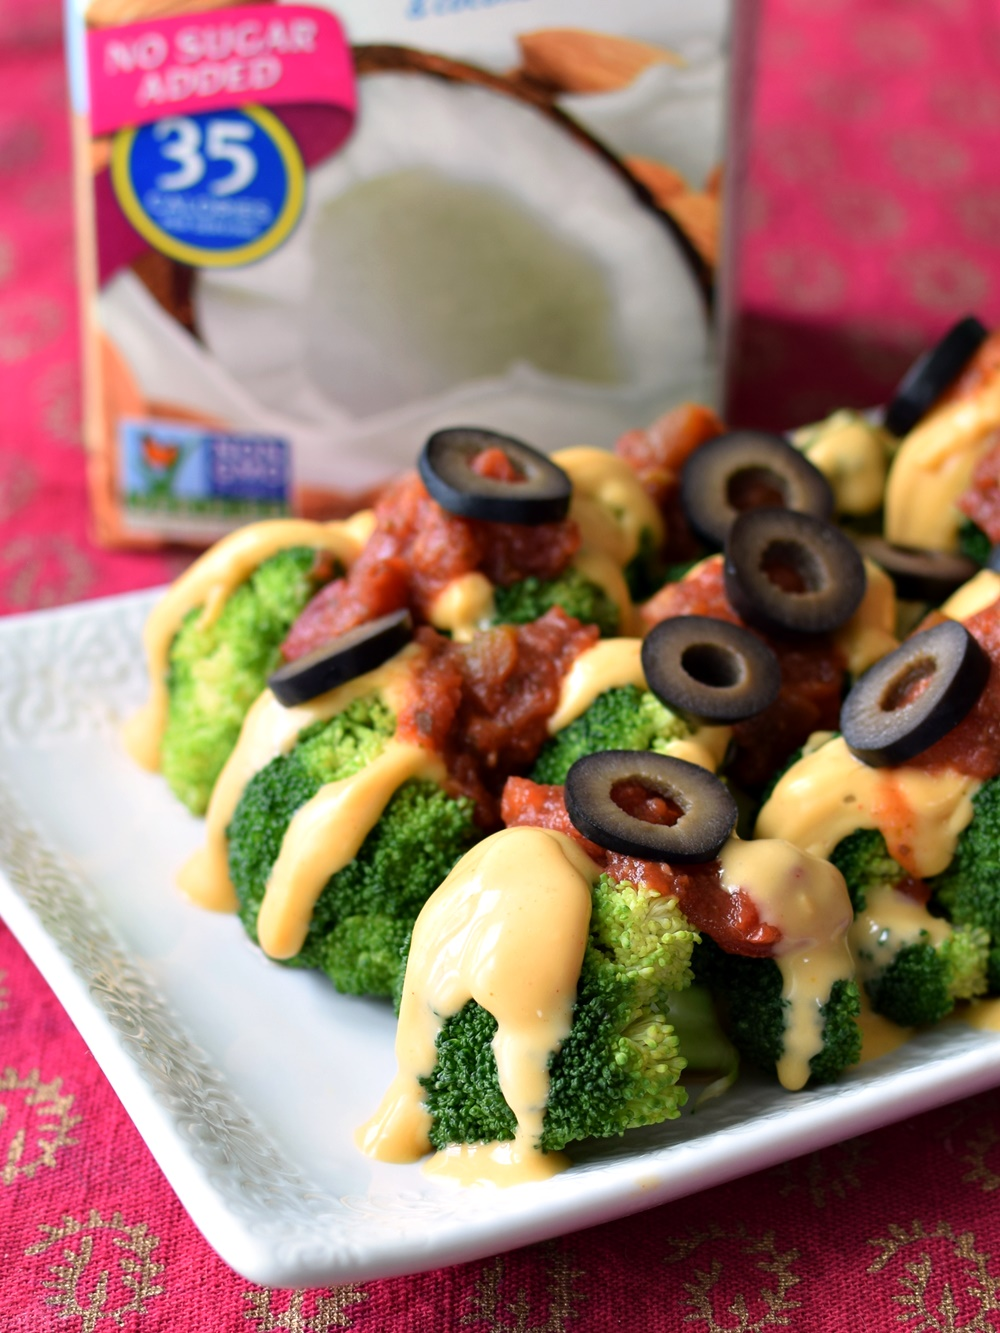 "Easy Cheesy Broccoli ""Nachos"" Recipe (Vegan, Gluten-Free & Allergy-Friendly for Awareness Month!) + Big Things to Come in Dairy Free"